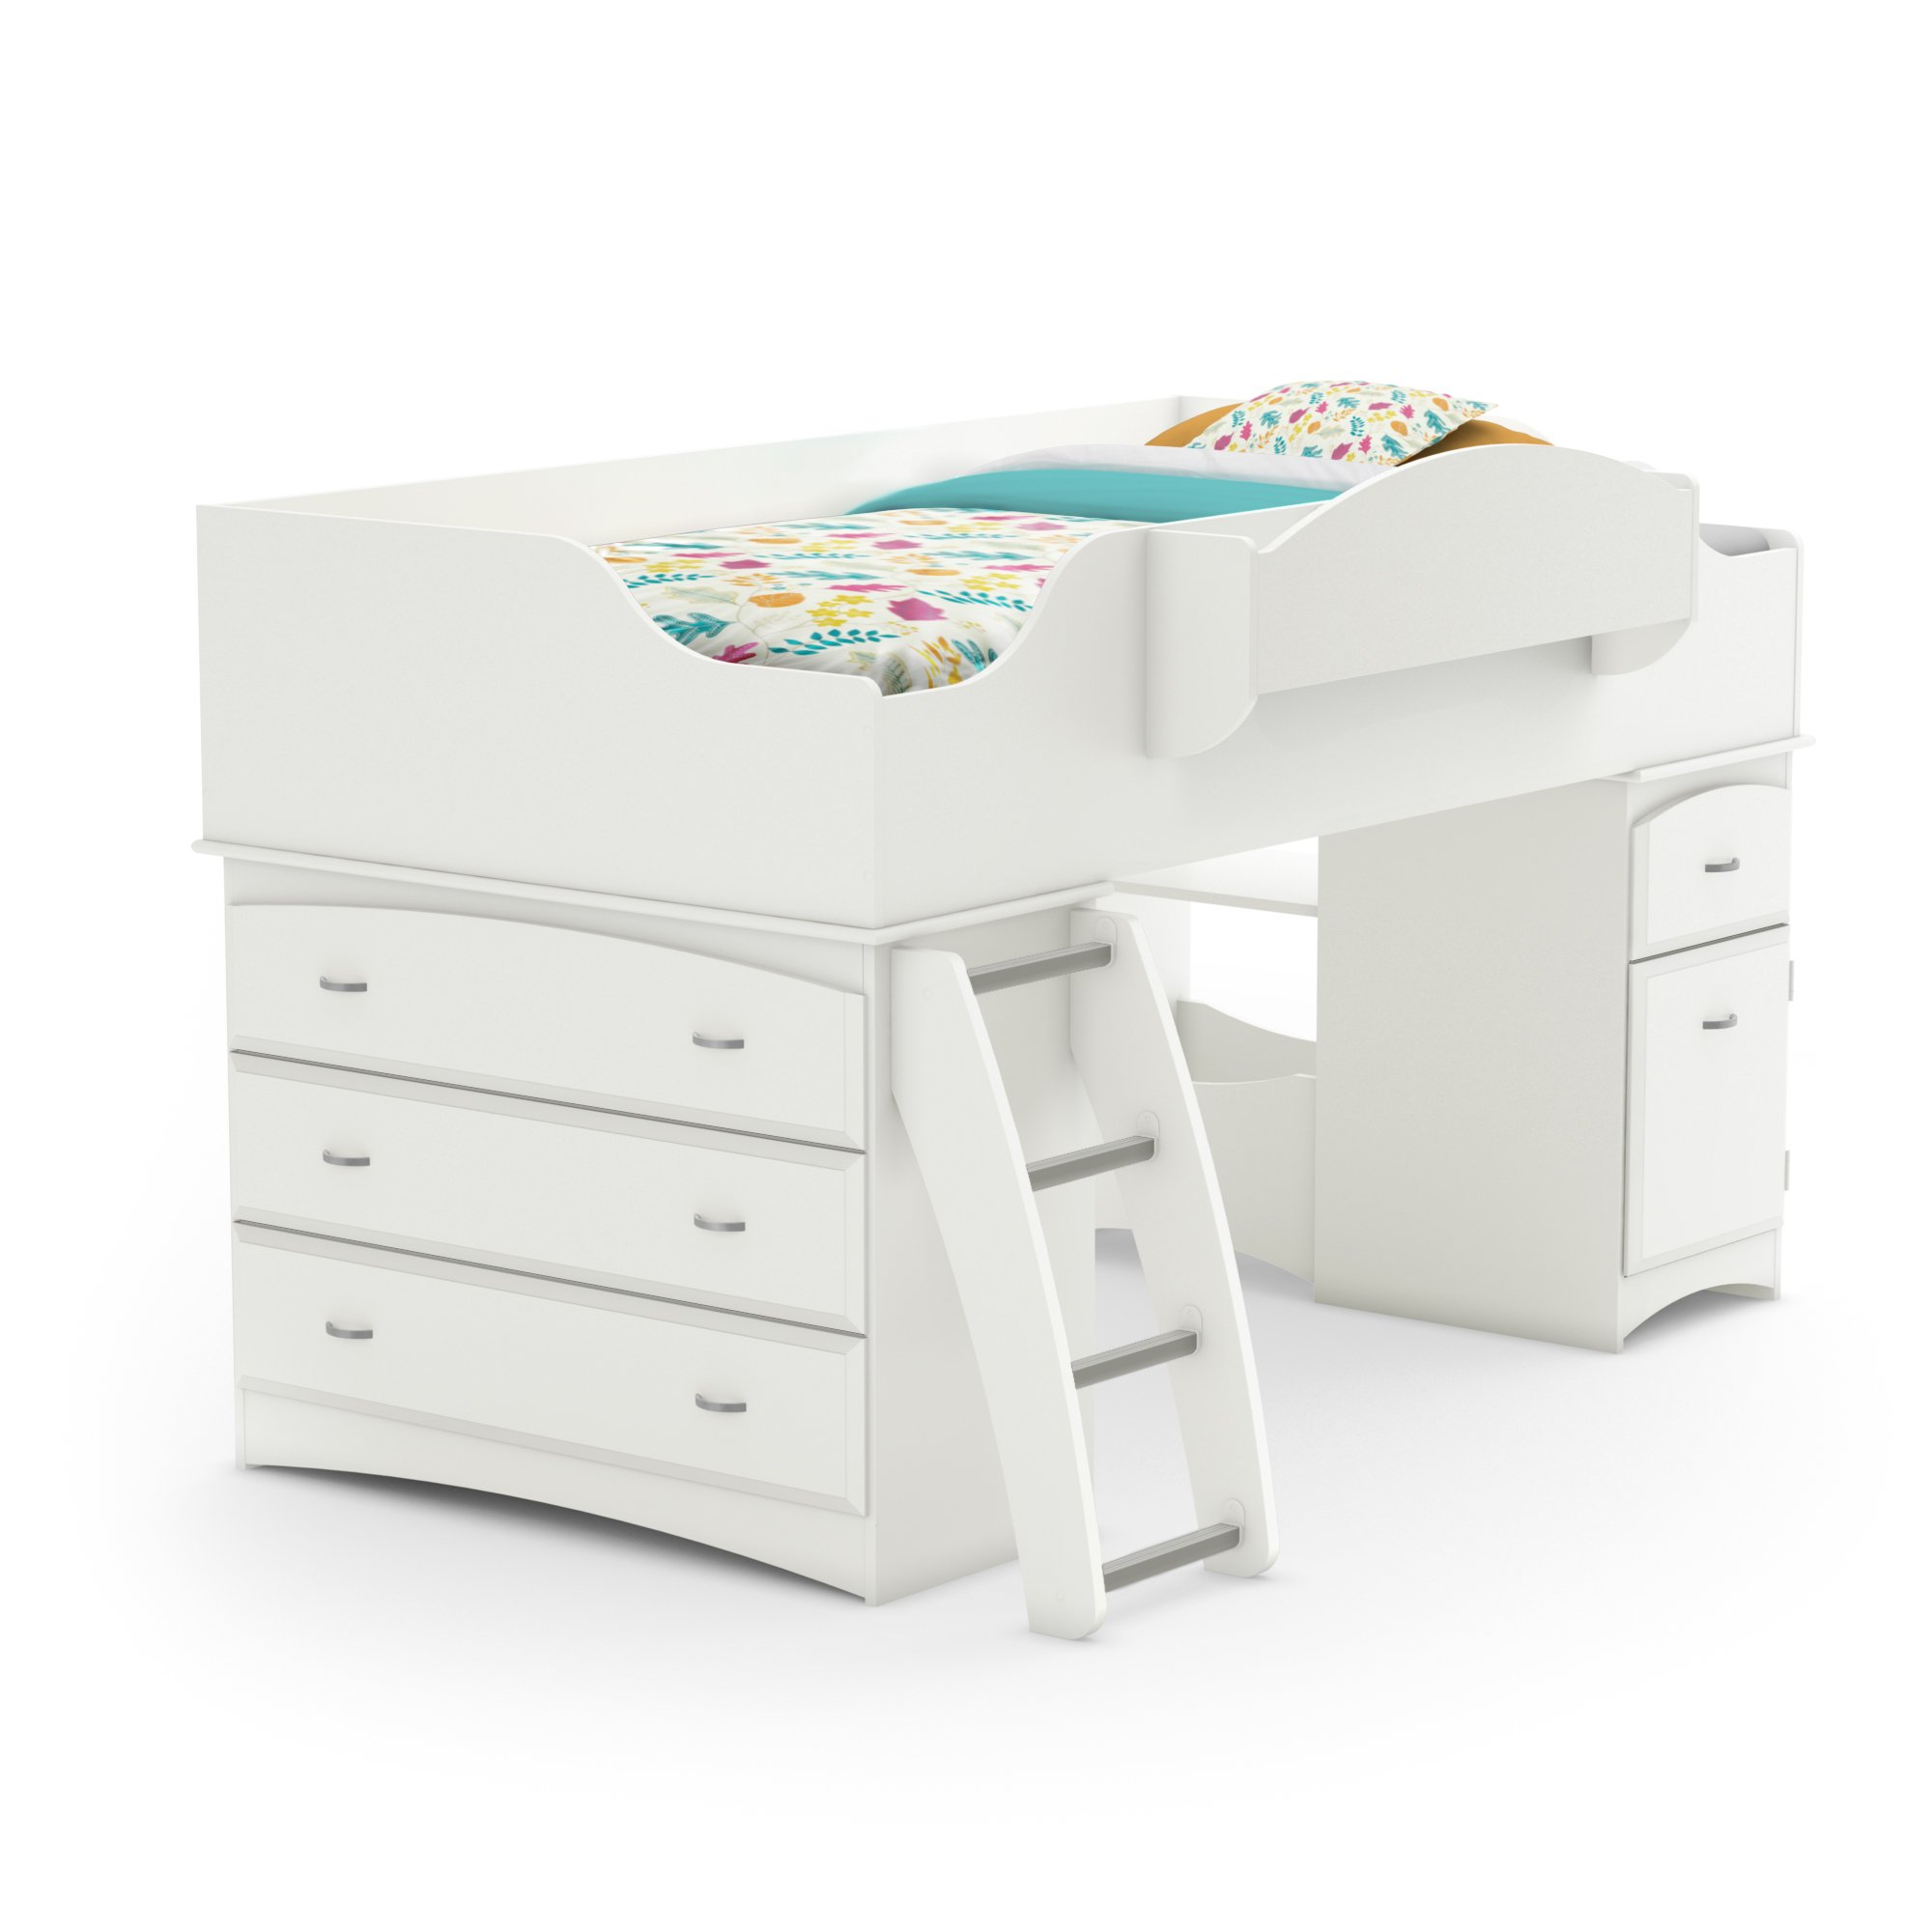 South Shore Imagine Collection Twin Loft Bed with Storage - Pure White by South Shore